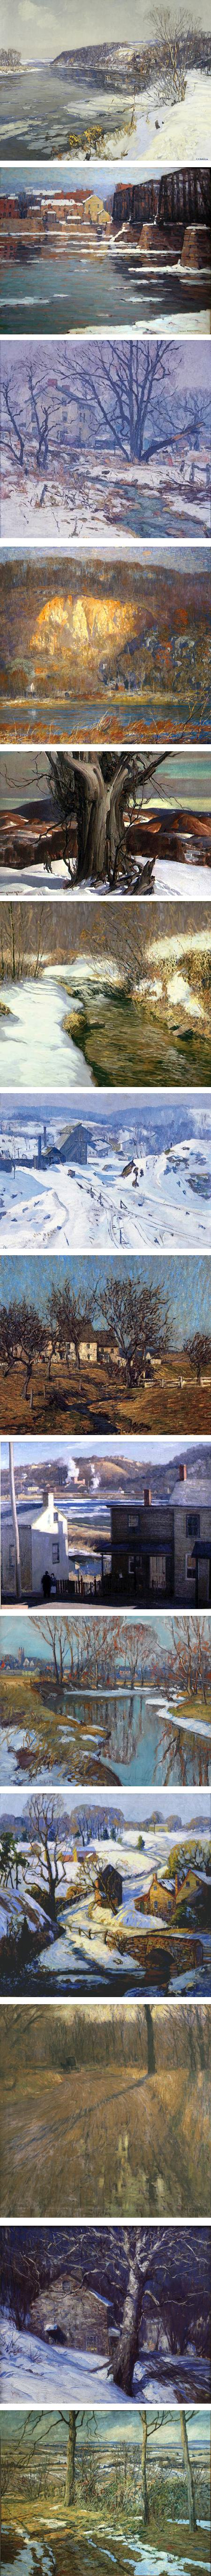 Pennsylvania Impressionists: Edward Redfield, John Folinsbee, Antonio Martino, Arthur Meltzer, Daniel Garber, Kenneth Nunamaker, Roy C. Nuse, Robert Spencer, Harry Leith-Ross, Walter Emerson Baum, Fern I. Coppage, William Lathrop, Geoge Sotter, Walter Schofield